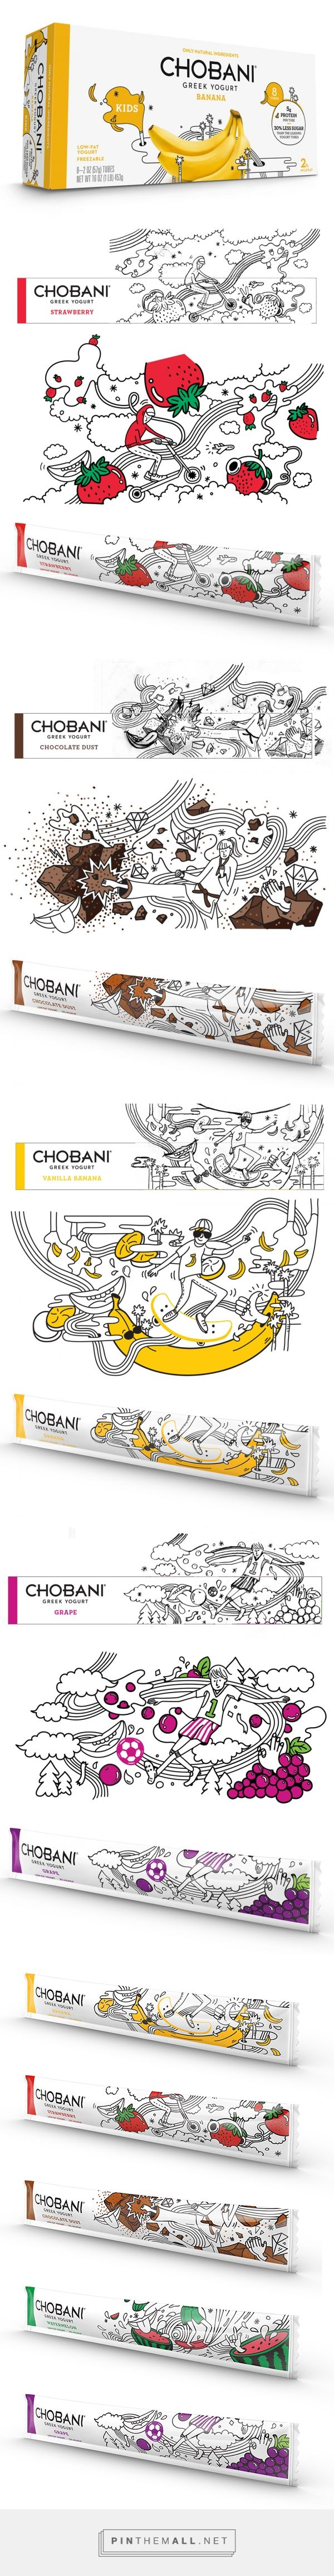 Chobani Yogurt Kids — The Dieline - Branding & Packaging... - a grouped images picture - Pin Them All